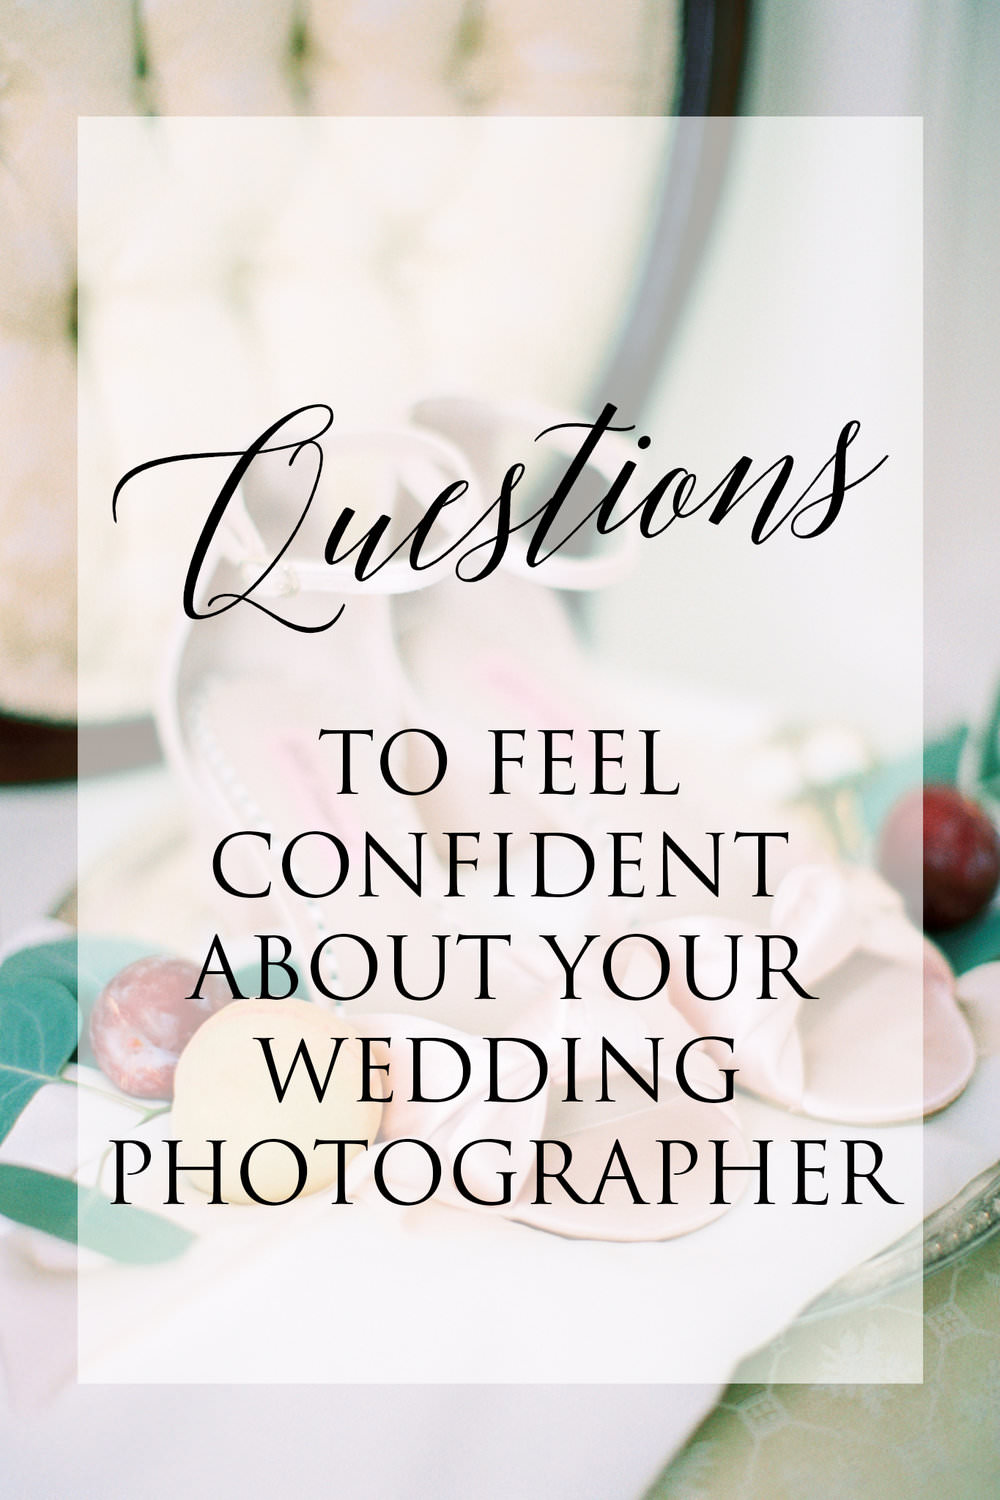 Choosing Your Wedding Photographer Advice - If you haven't started looking at photographers already, you've probably heard that they're the most important and critical vendor decision you'll make. If that's not intimidating enough, you've maybe realized that the choice isn't between a few good options...read more